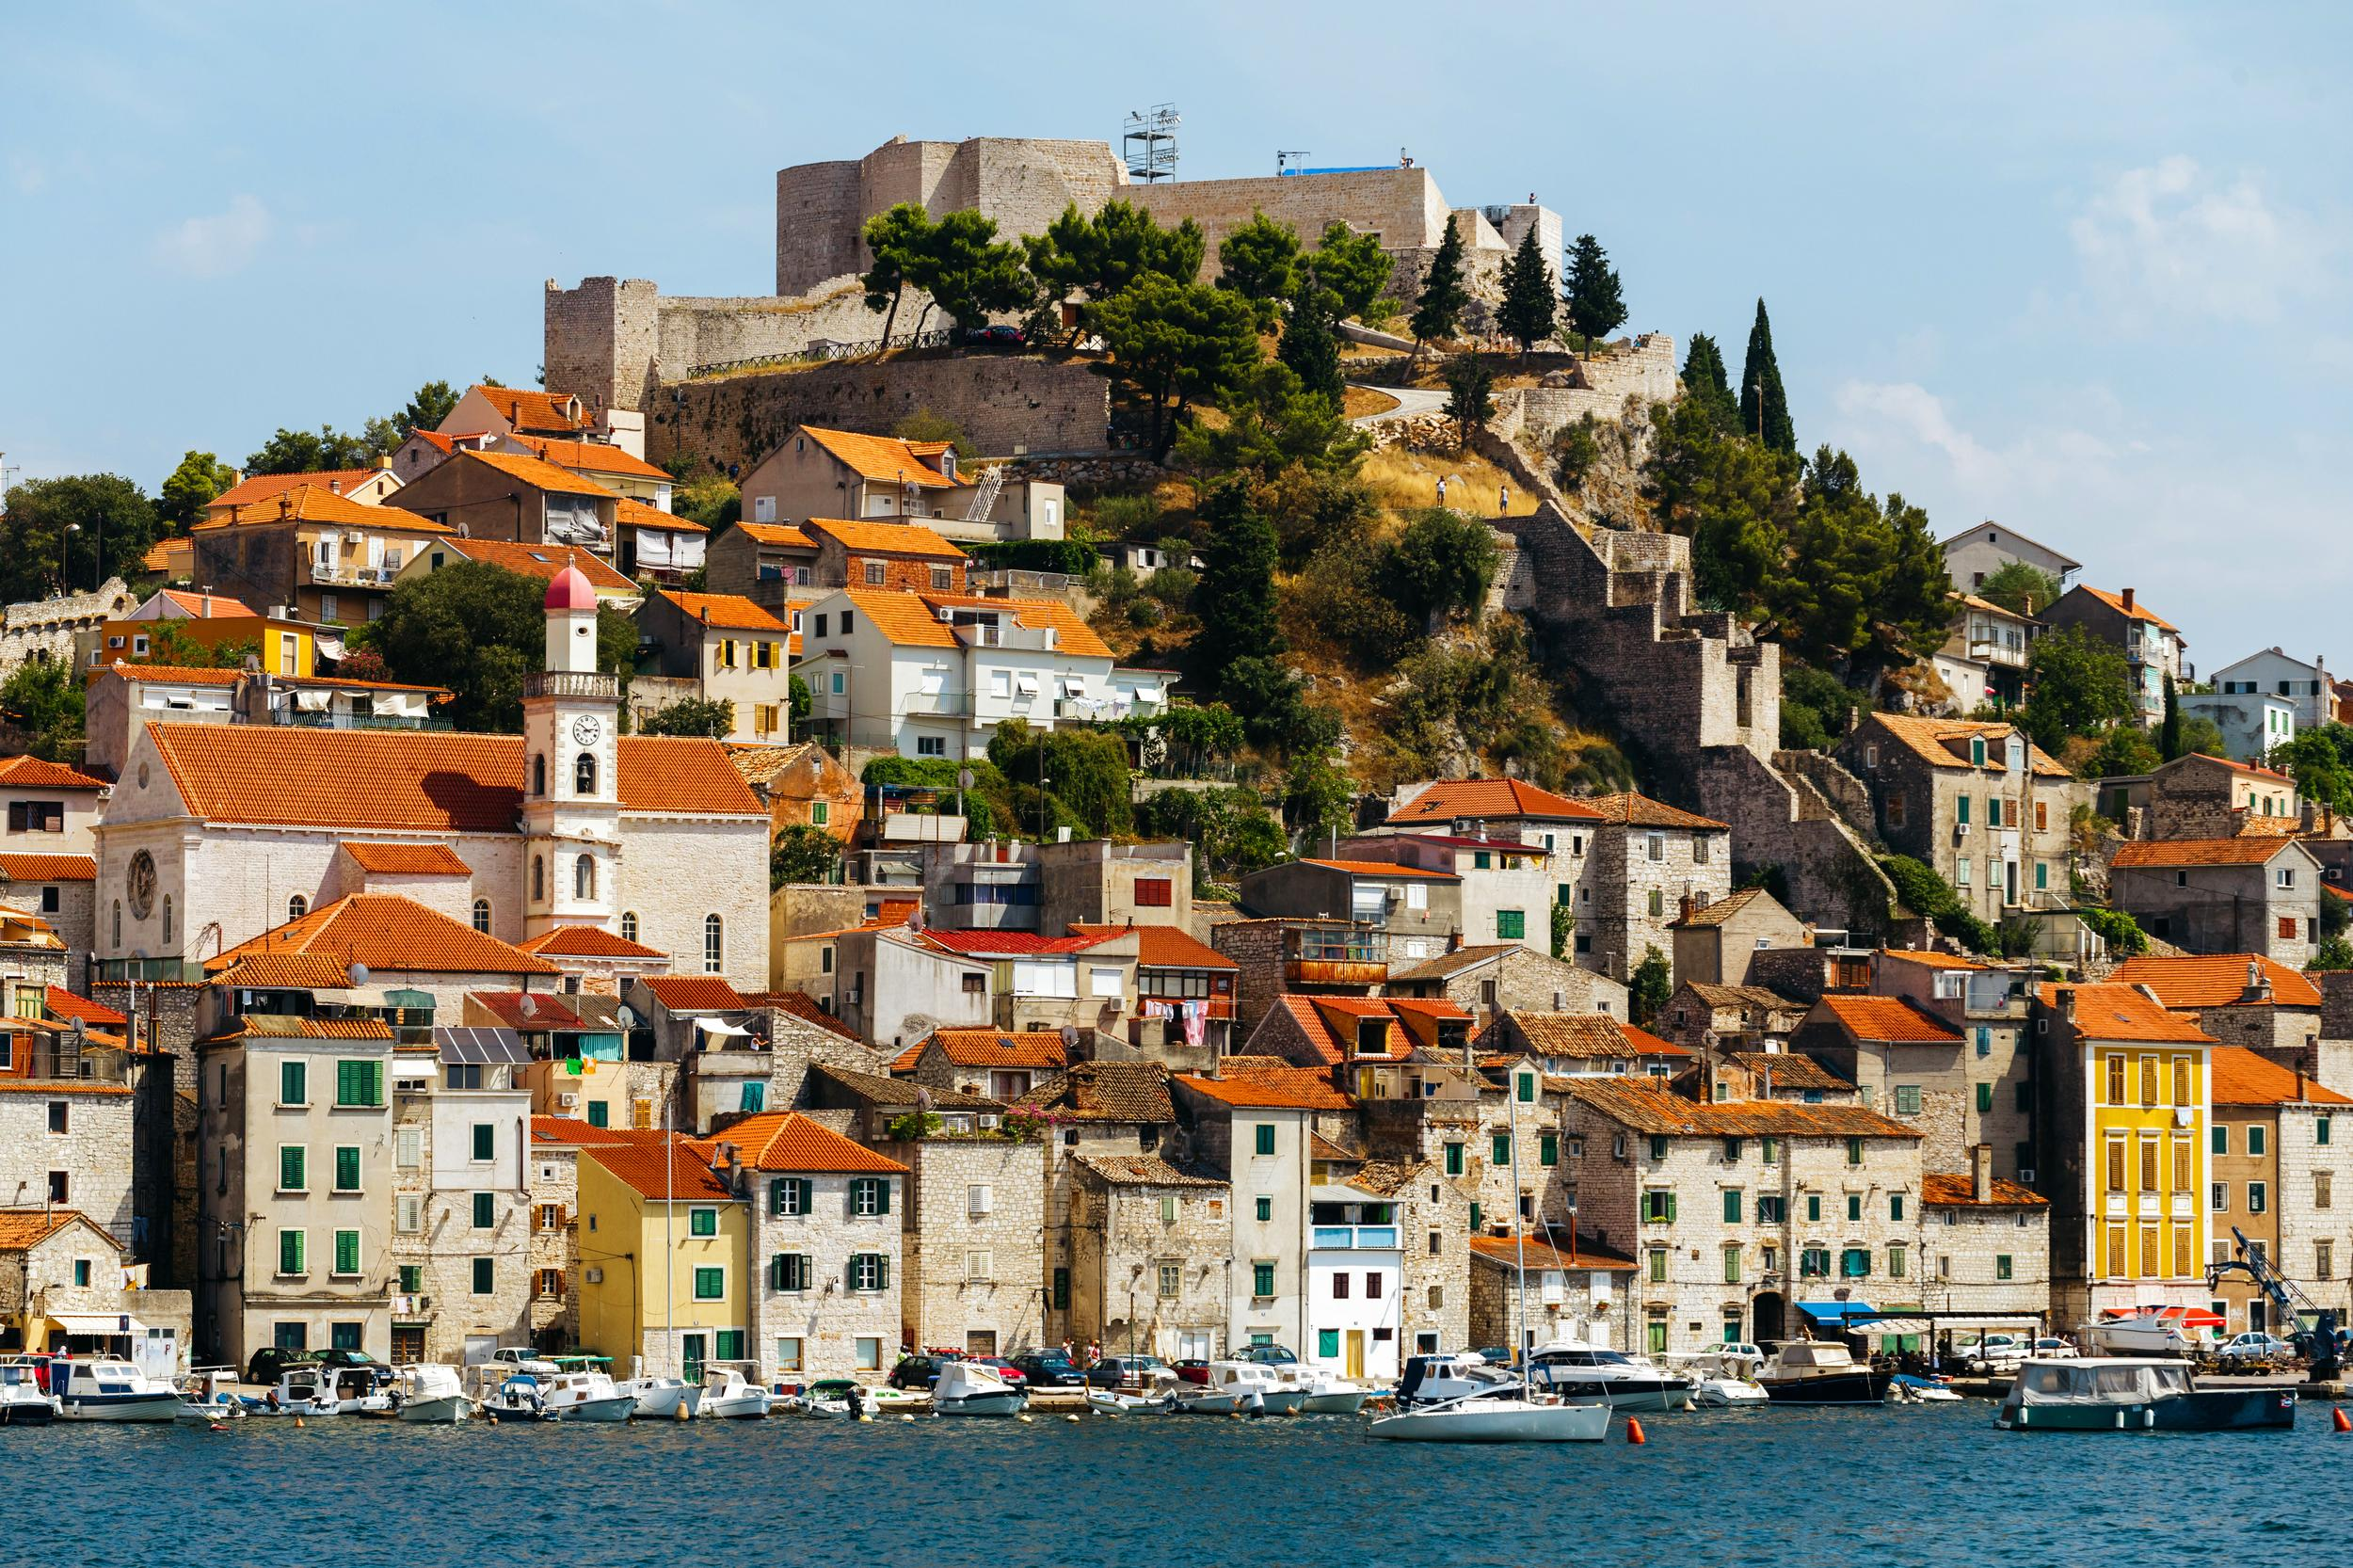 """<p><strong>GOT location</strong>: Braavos</p>  <p><strong>Real life location</strong>: Sibenik, Croatia</p>  <p>Visit the city that brought Arya Stark to the Faceless Man (and is just north of King's Landing in real life).</p>  <p><a href=""""https://fave.co/2v7Bdjo""""><strong>Book your trip.</strong></a></p>"""